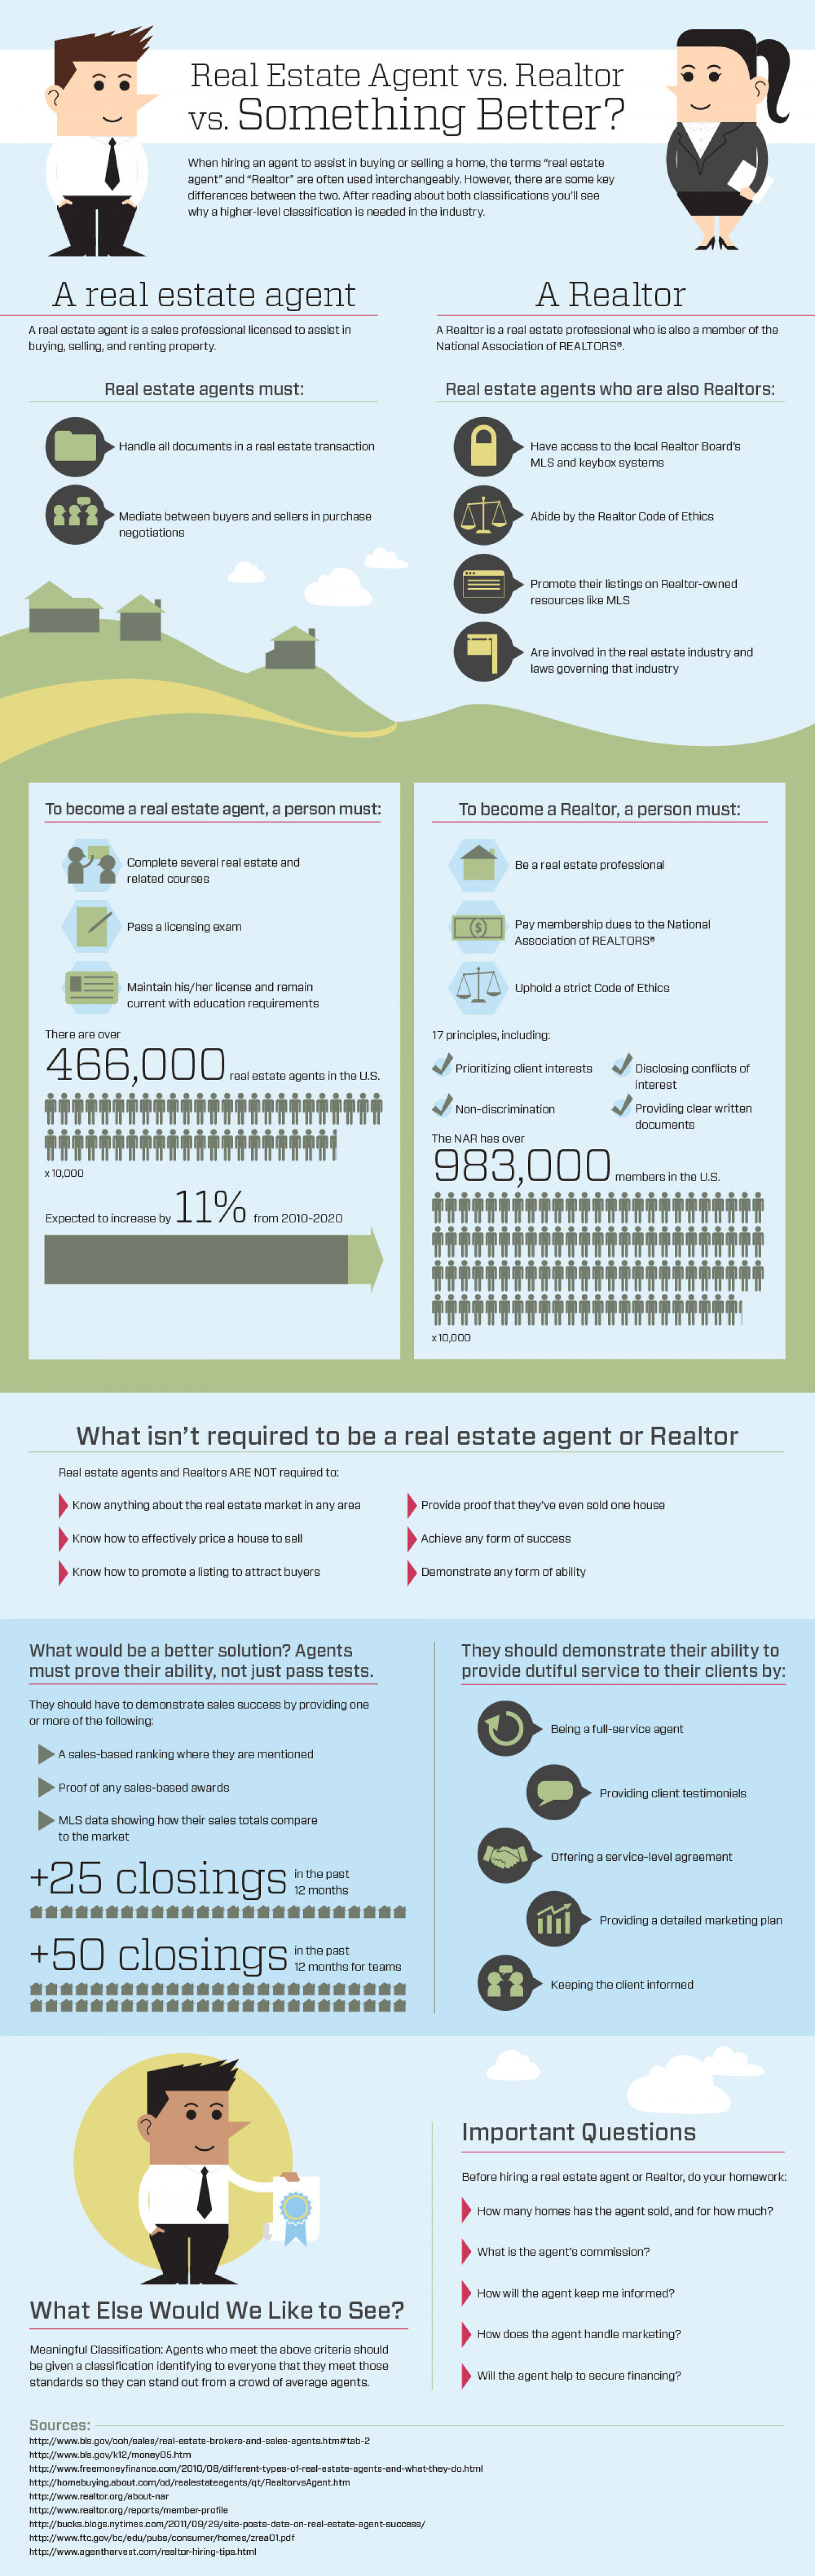 What Do Real Estate Agents Do